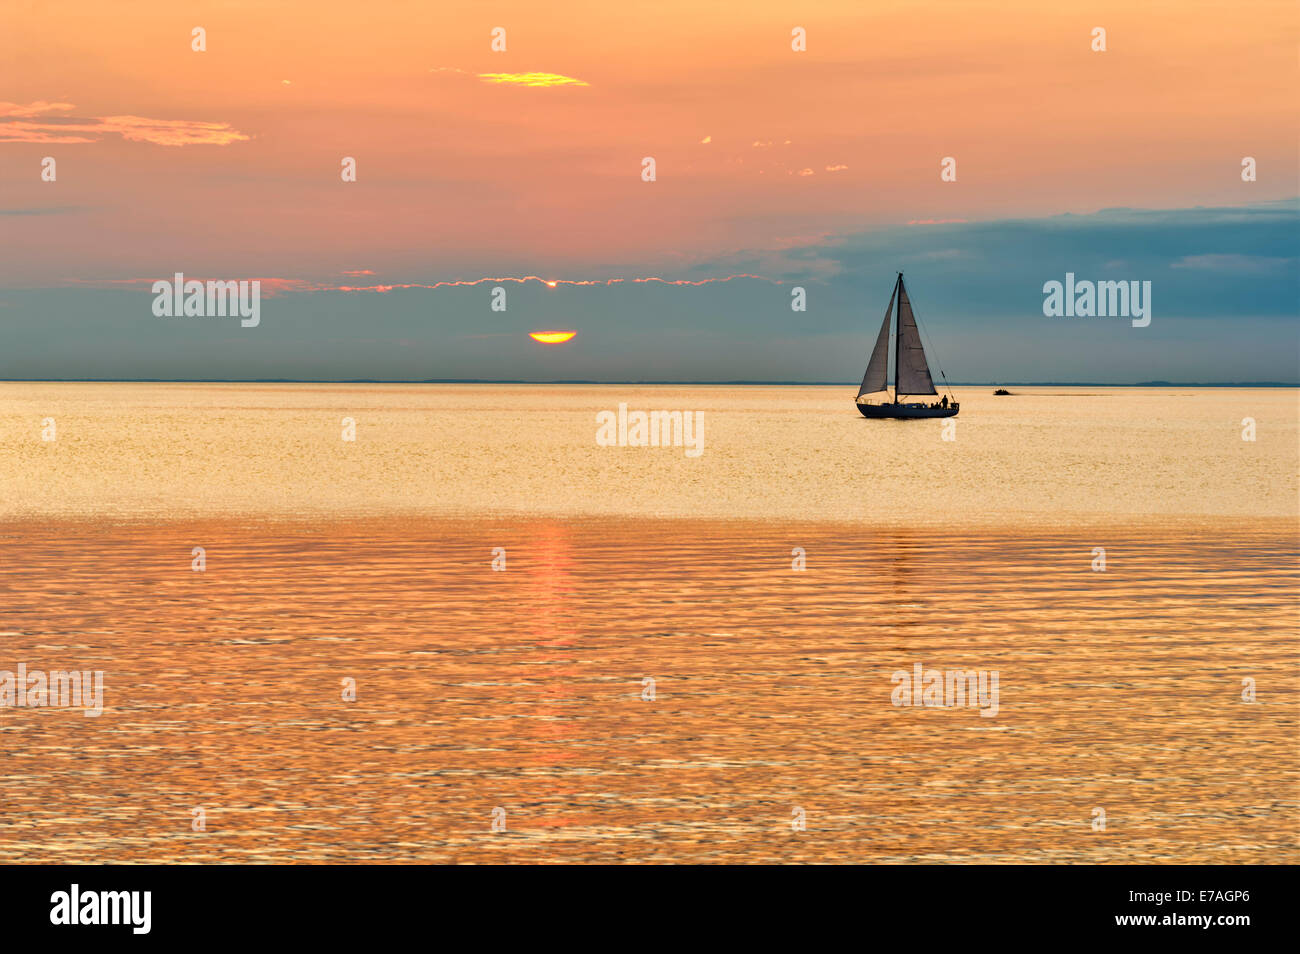 Silhouette  of a sailboat on calm waters, contrasting an orange and blue sunset sky on the Great Lakes, Green Bay, - Stock Image